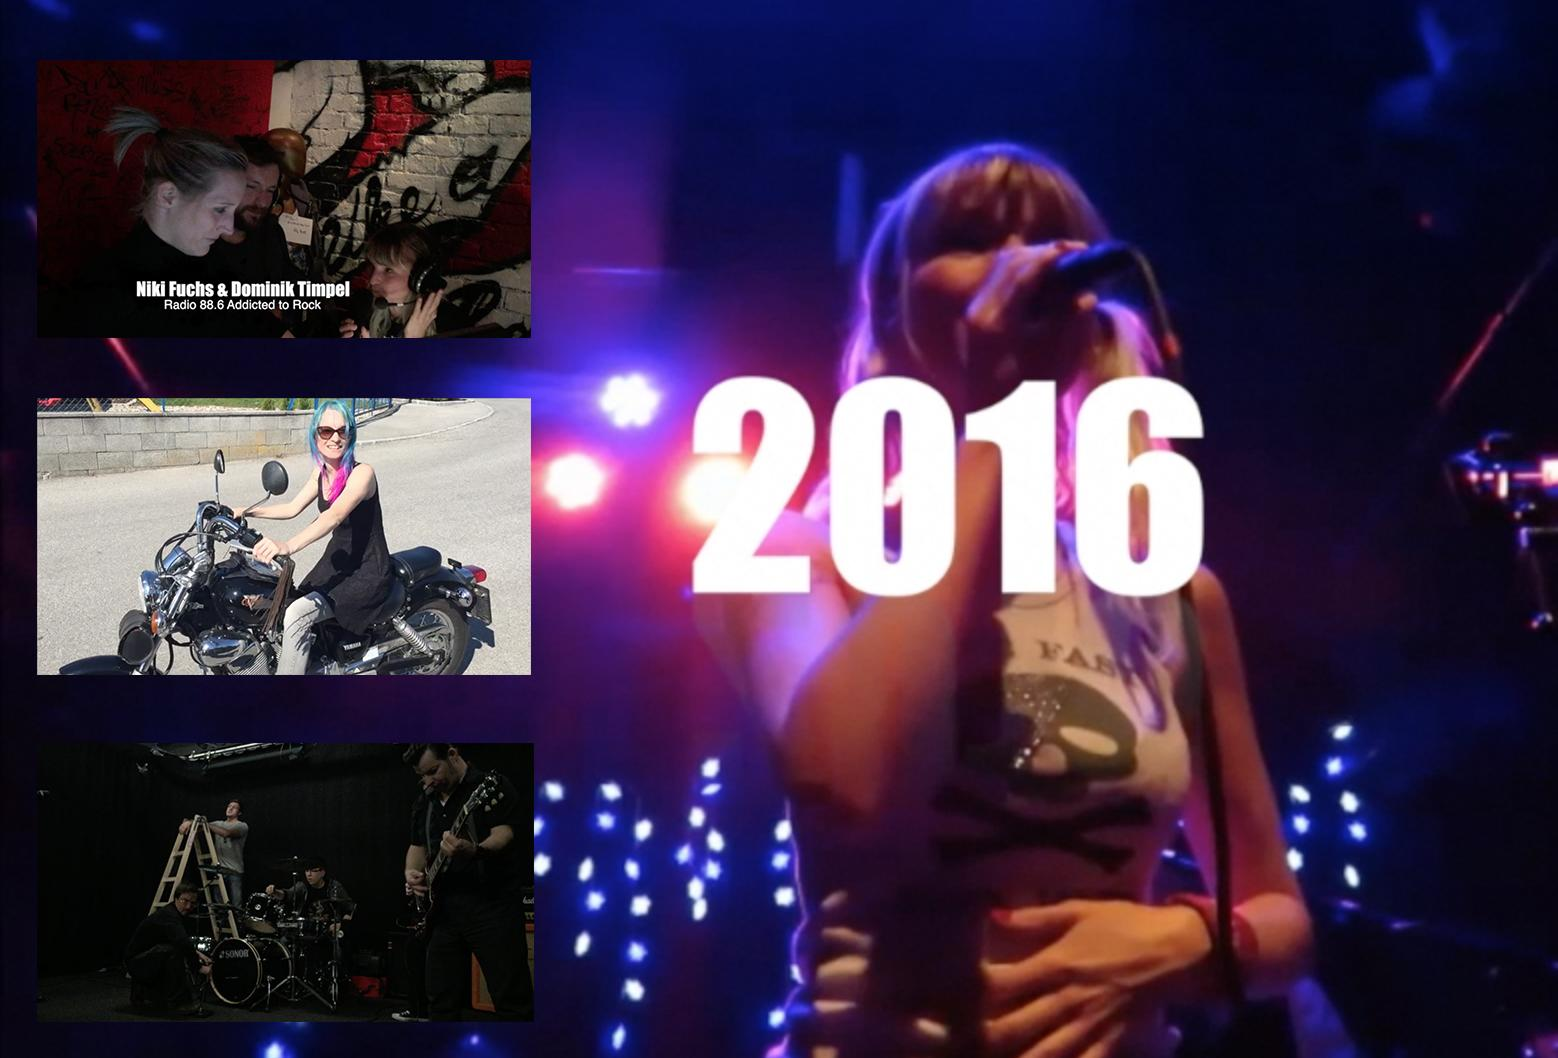 Webisode 33 – The year in review 2016